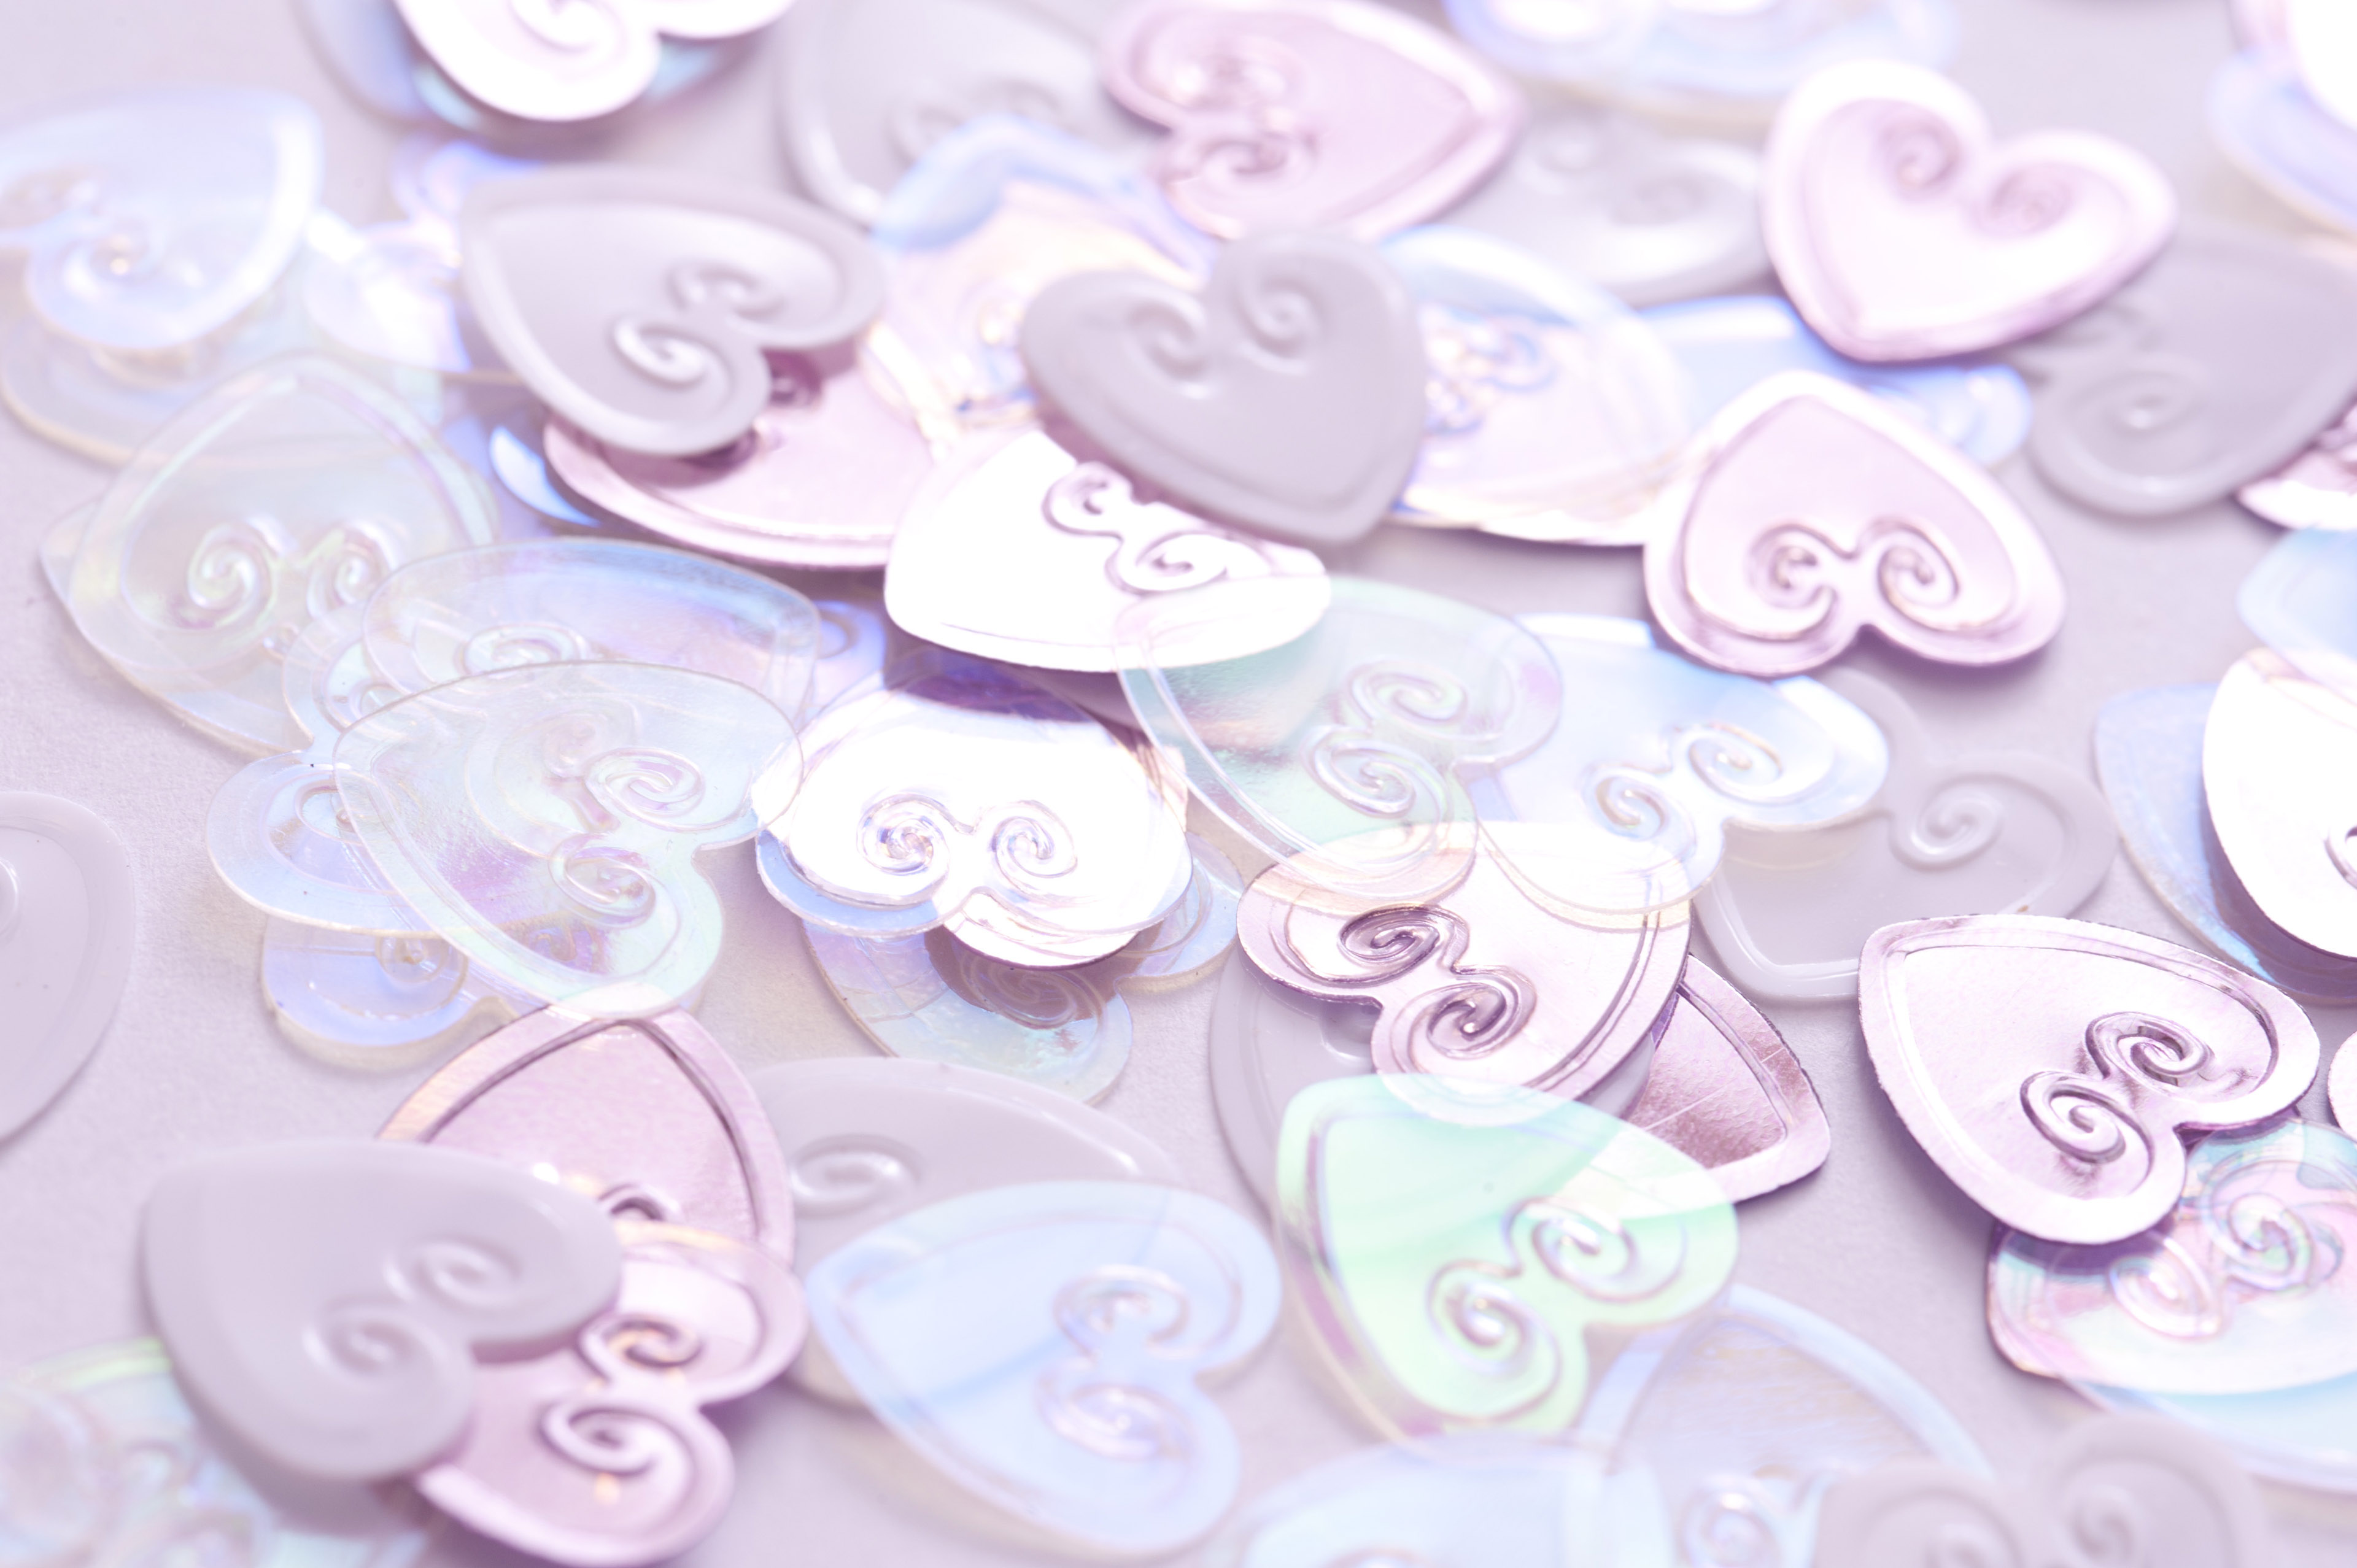 A pile of pink, metallic wedding heart decorations in a dreamy background.